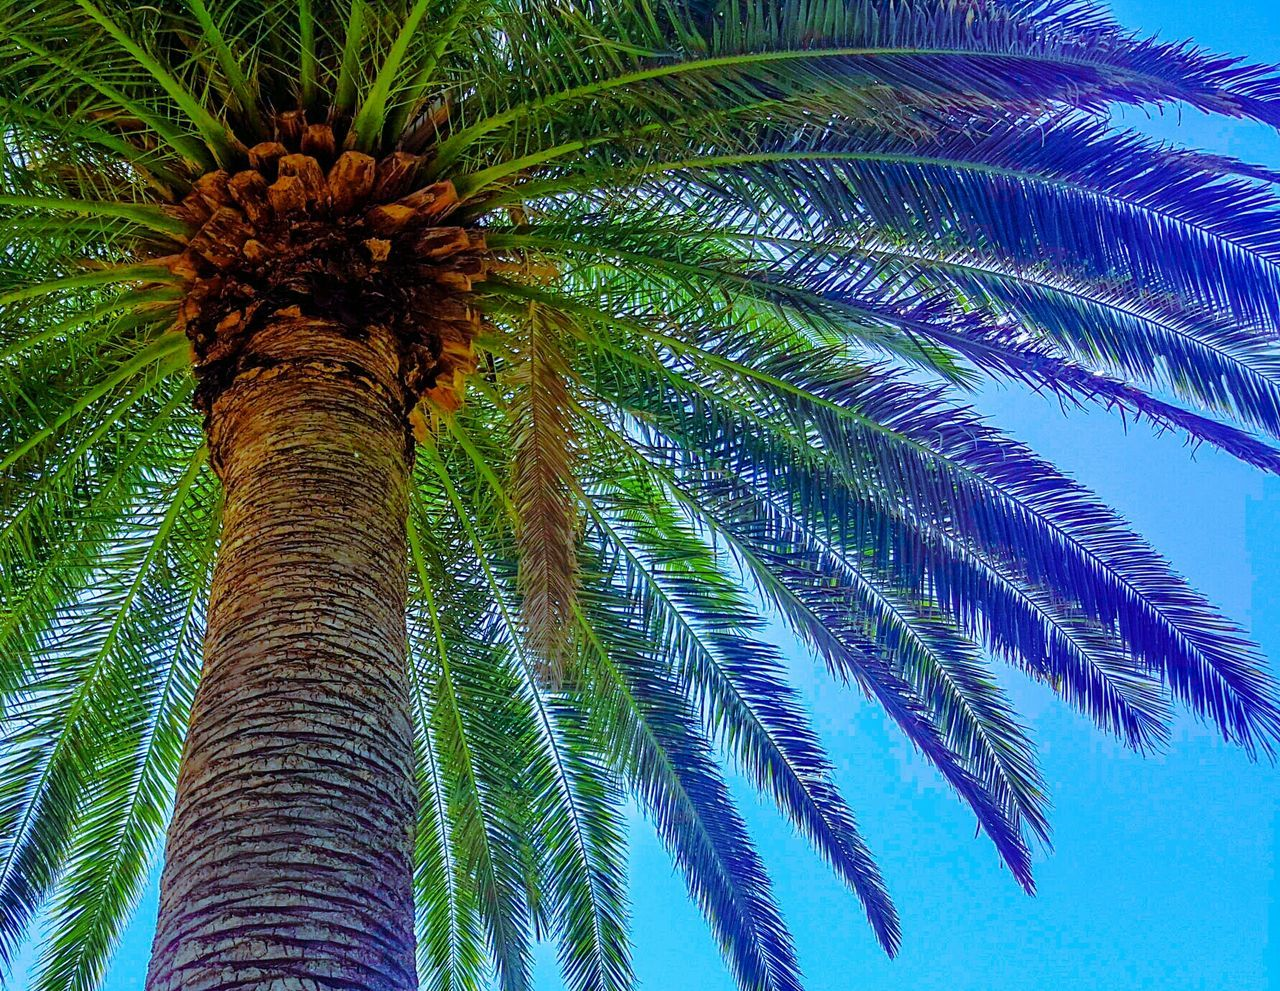 palm tree, tree, low angle view, tree trunk, growth, palm leaf, nature, beauty in nature, green color, sky, outdoors, no people, day, leaf, blue